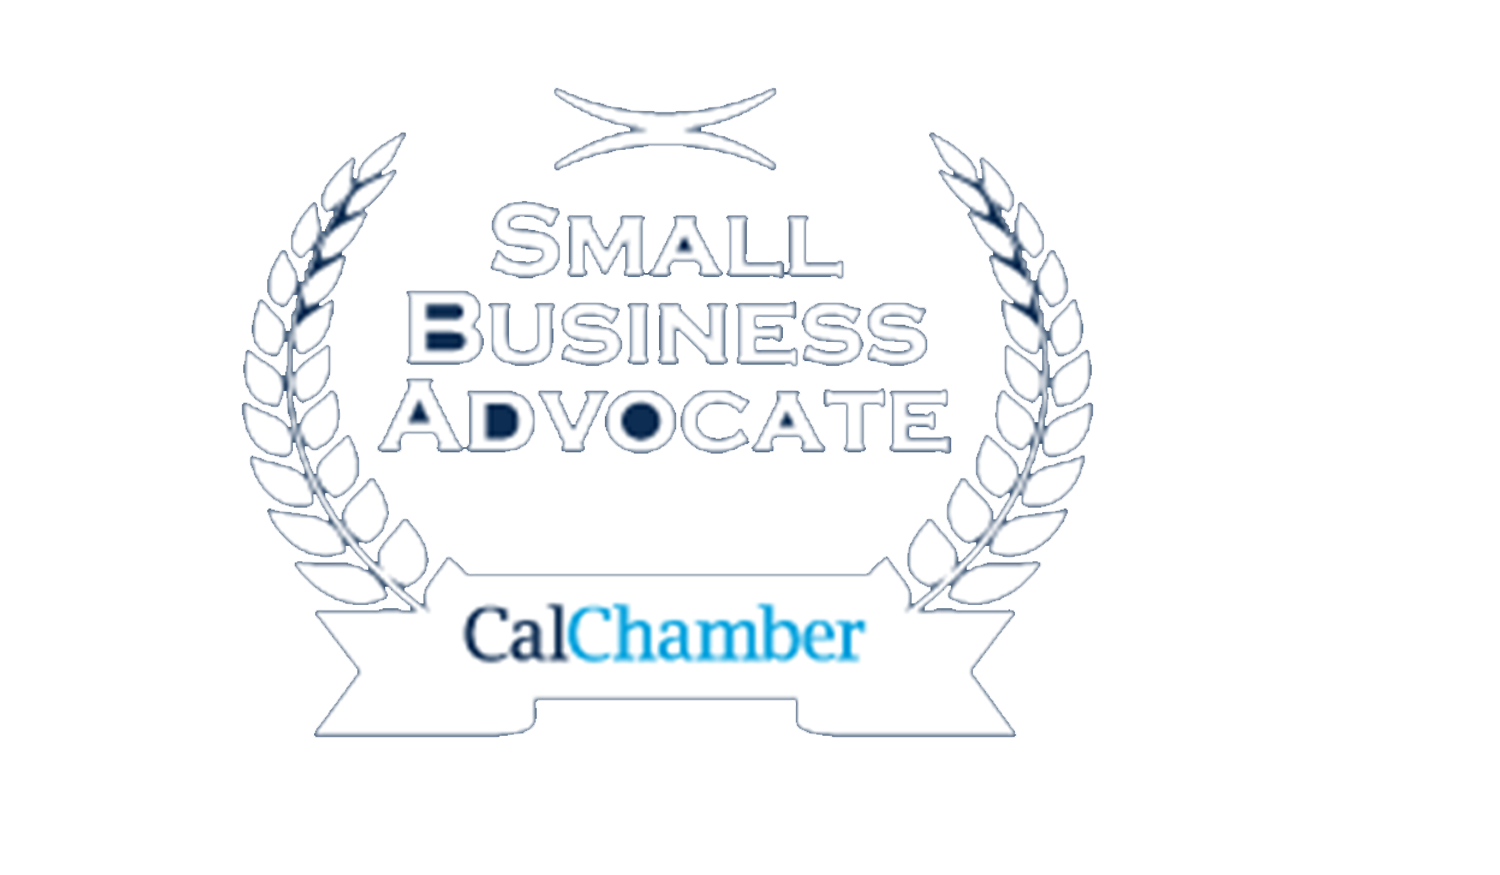 Small Business Advocate